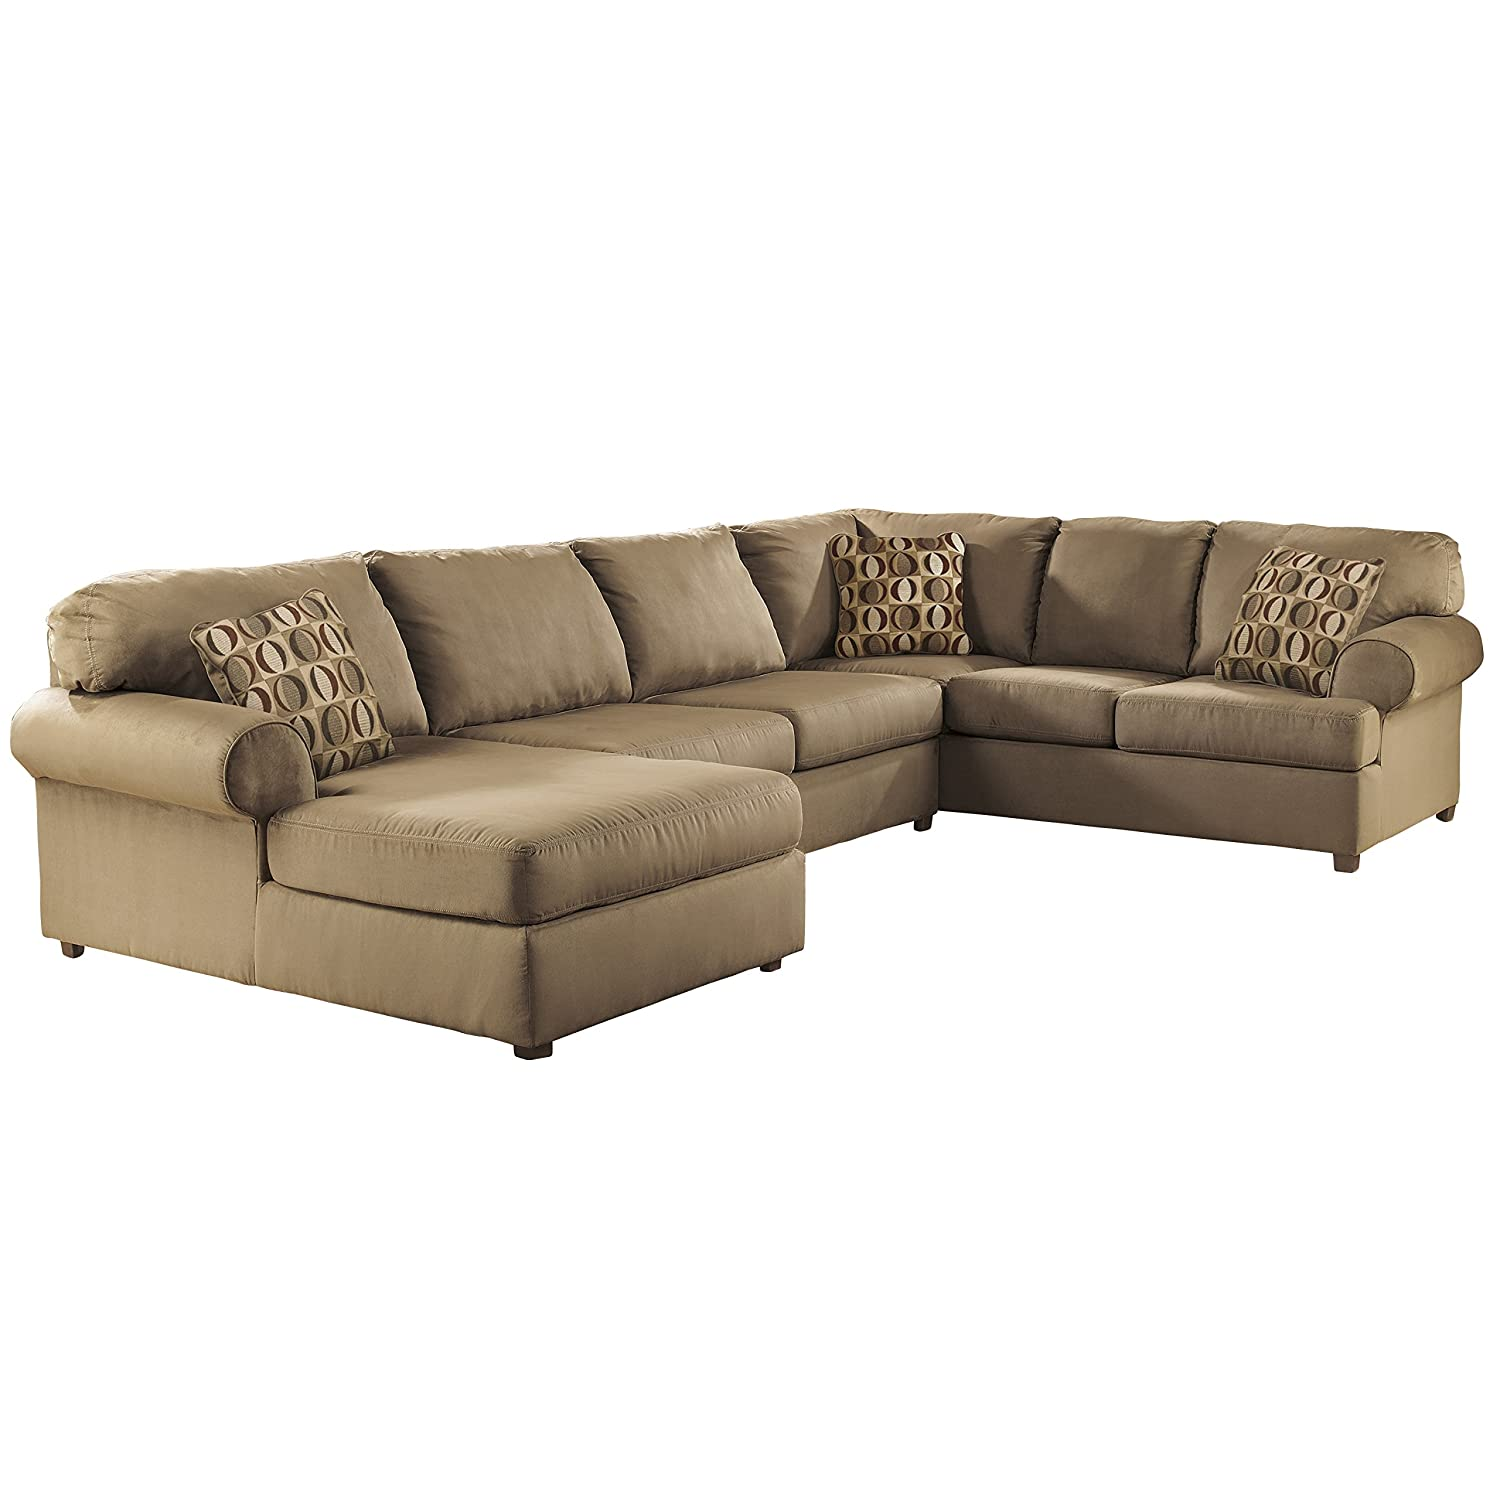 Amazon.com: Flash Furniture Signature Design By Ashley Cowan Sectional In  Mocha Fabric: Kitchen U0026 Dining